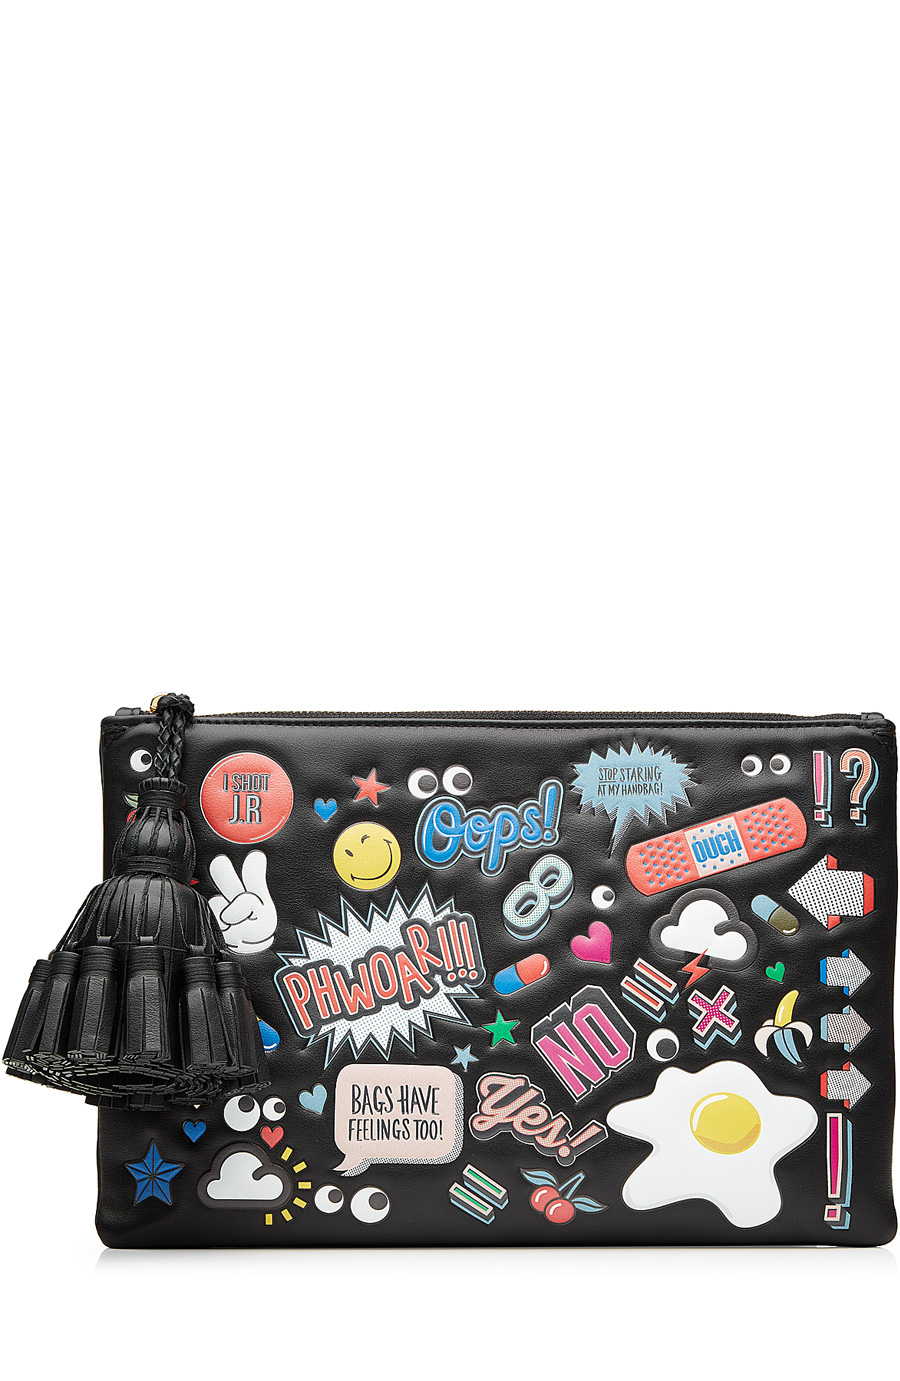 ANYA HINDMARCH Crossbody All Over Wink Stickers Bag In Black Circus Leather at STYLEBOP.com